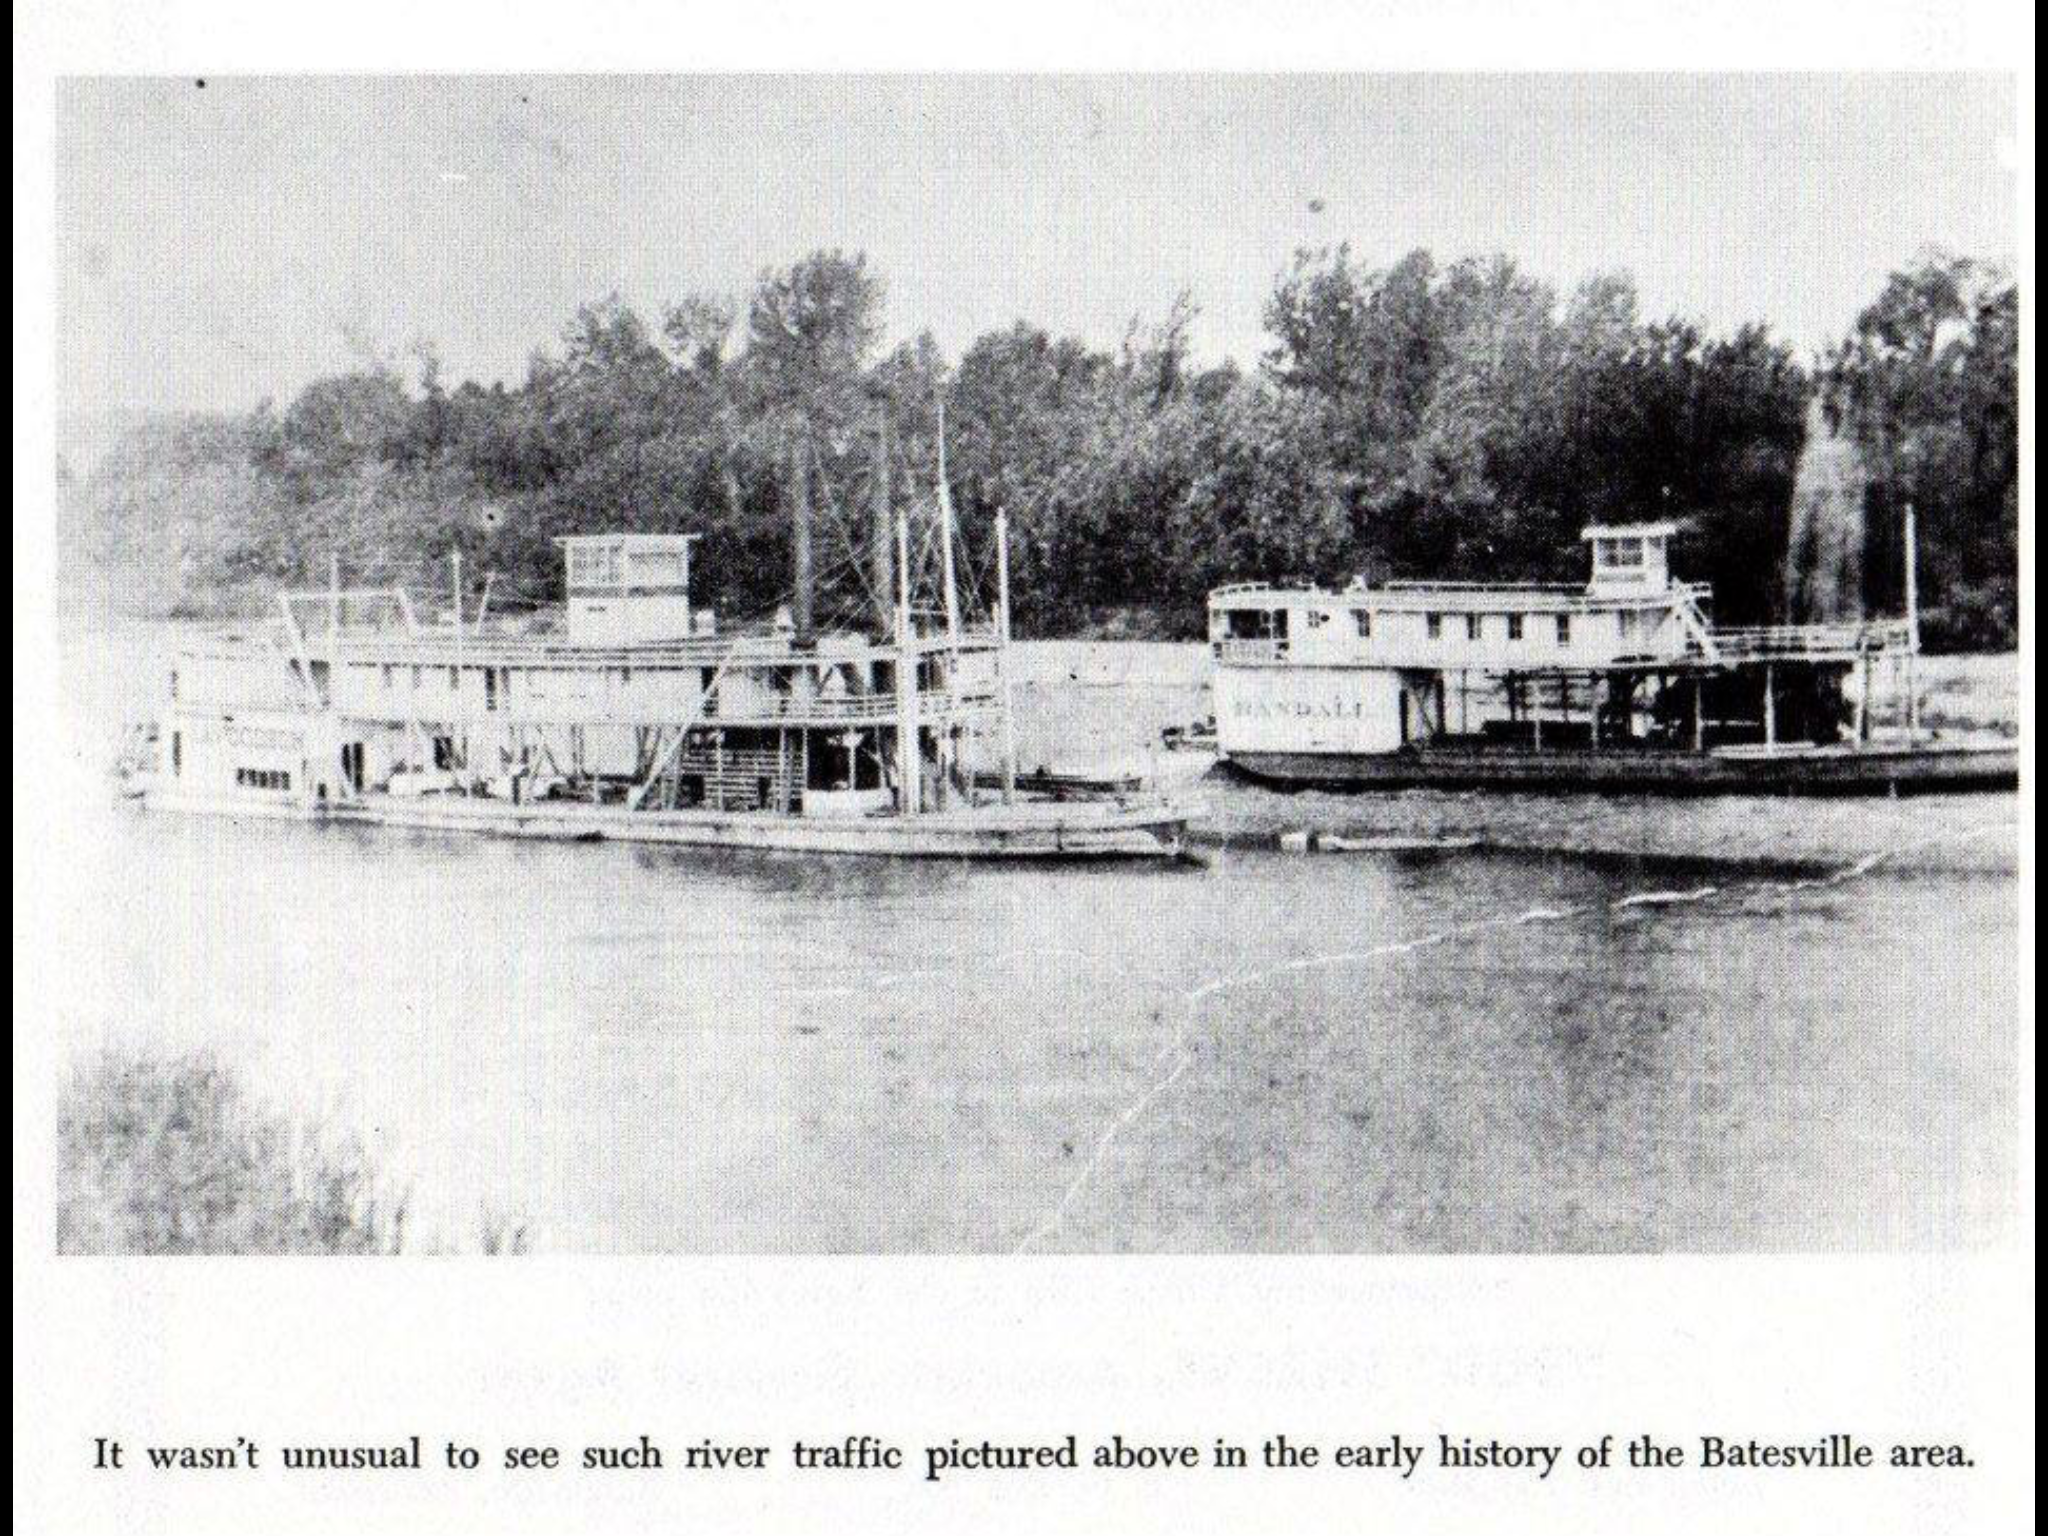 Here Is An Old Photo Of River Traffic On The White River Near